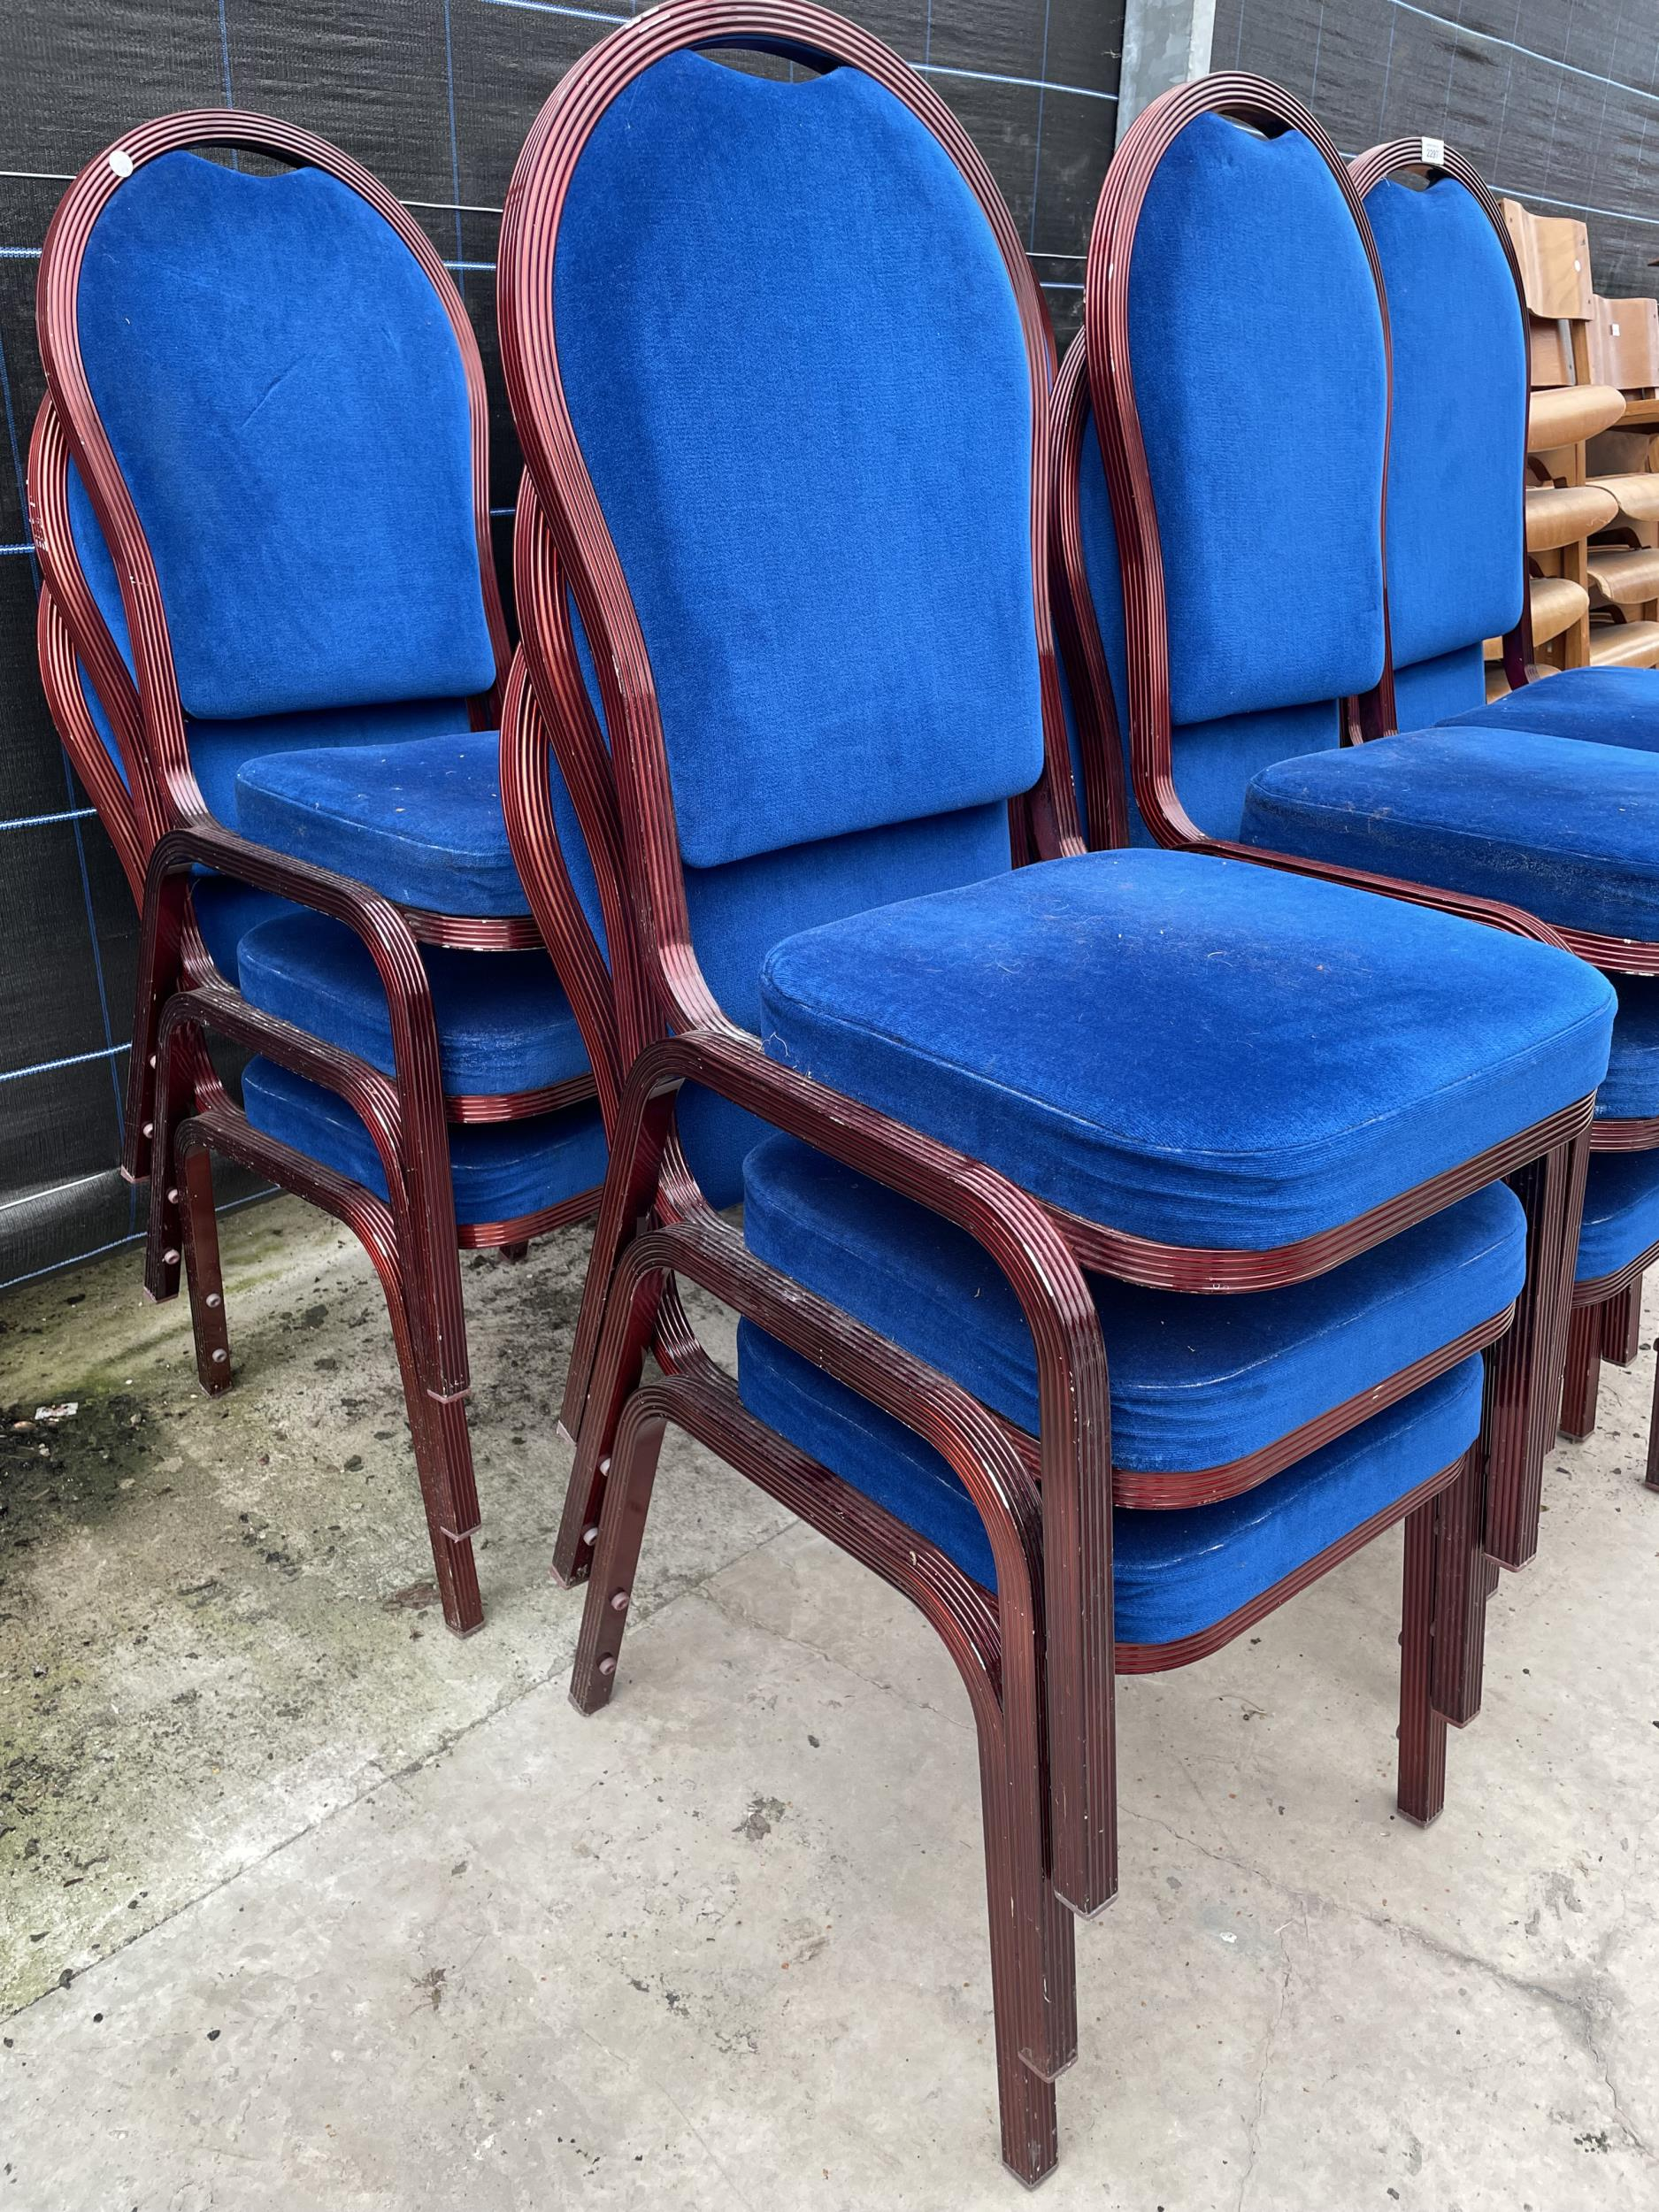 EIGHTEEN MODERN STACKING CHAIRS - Image 2 of 3